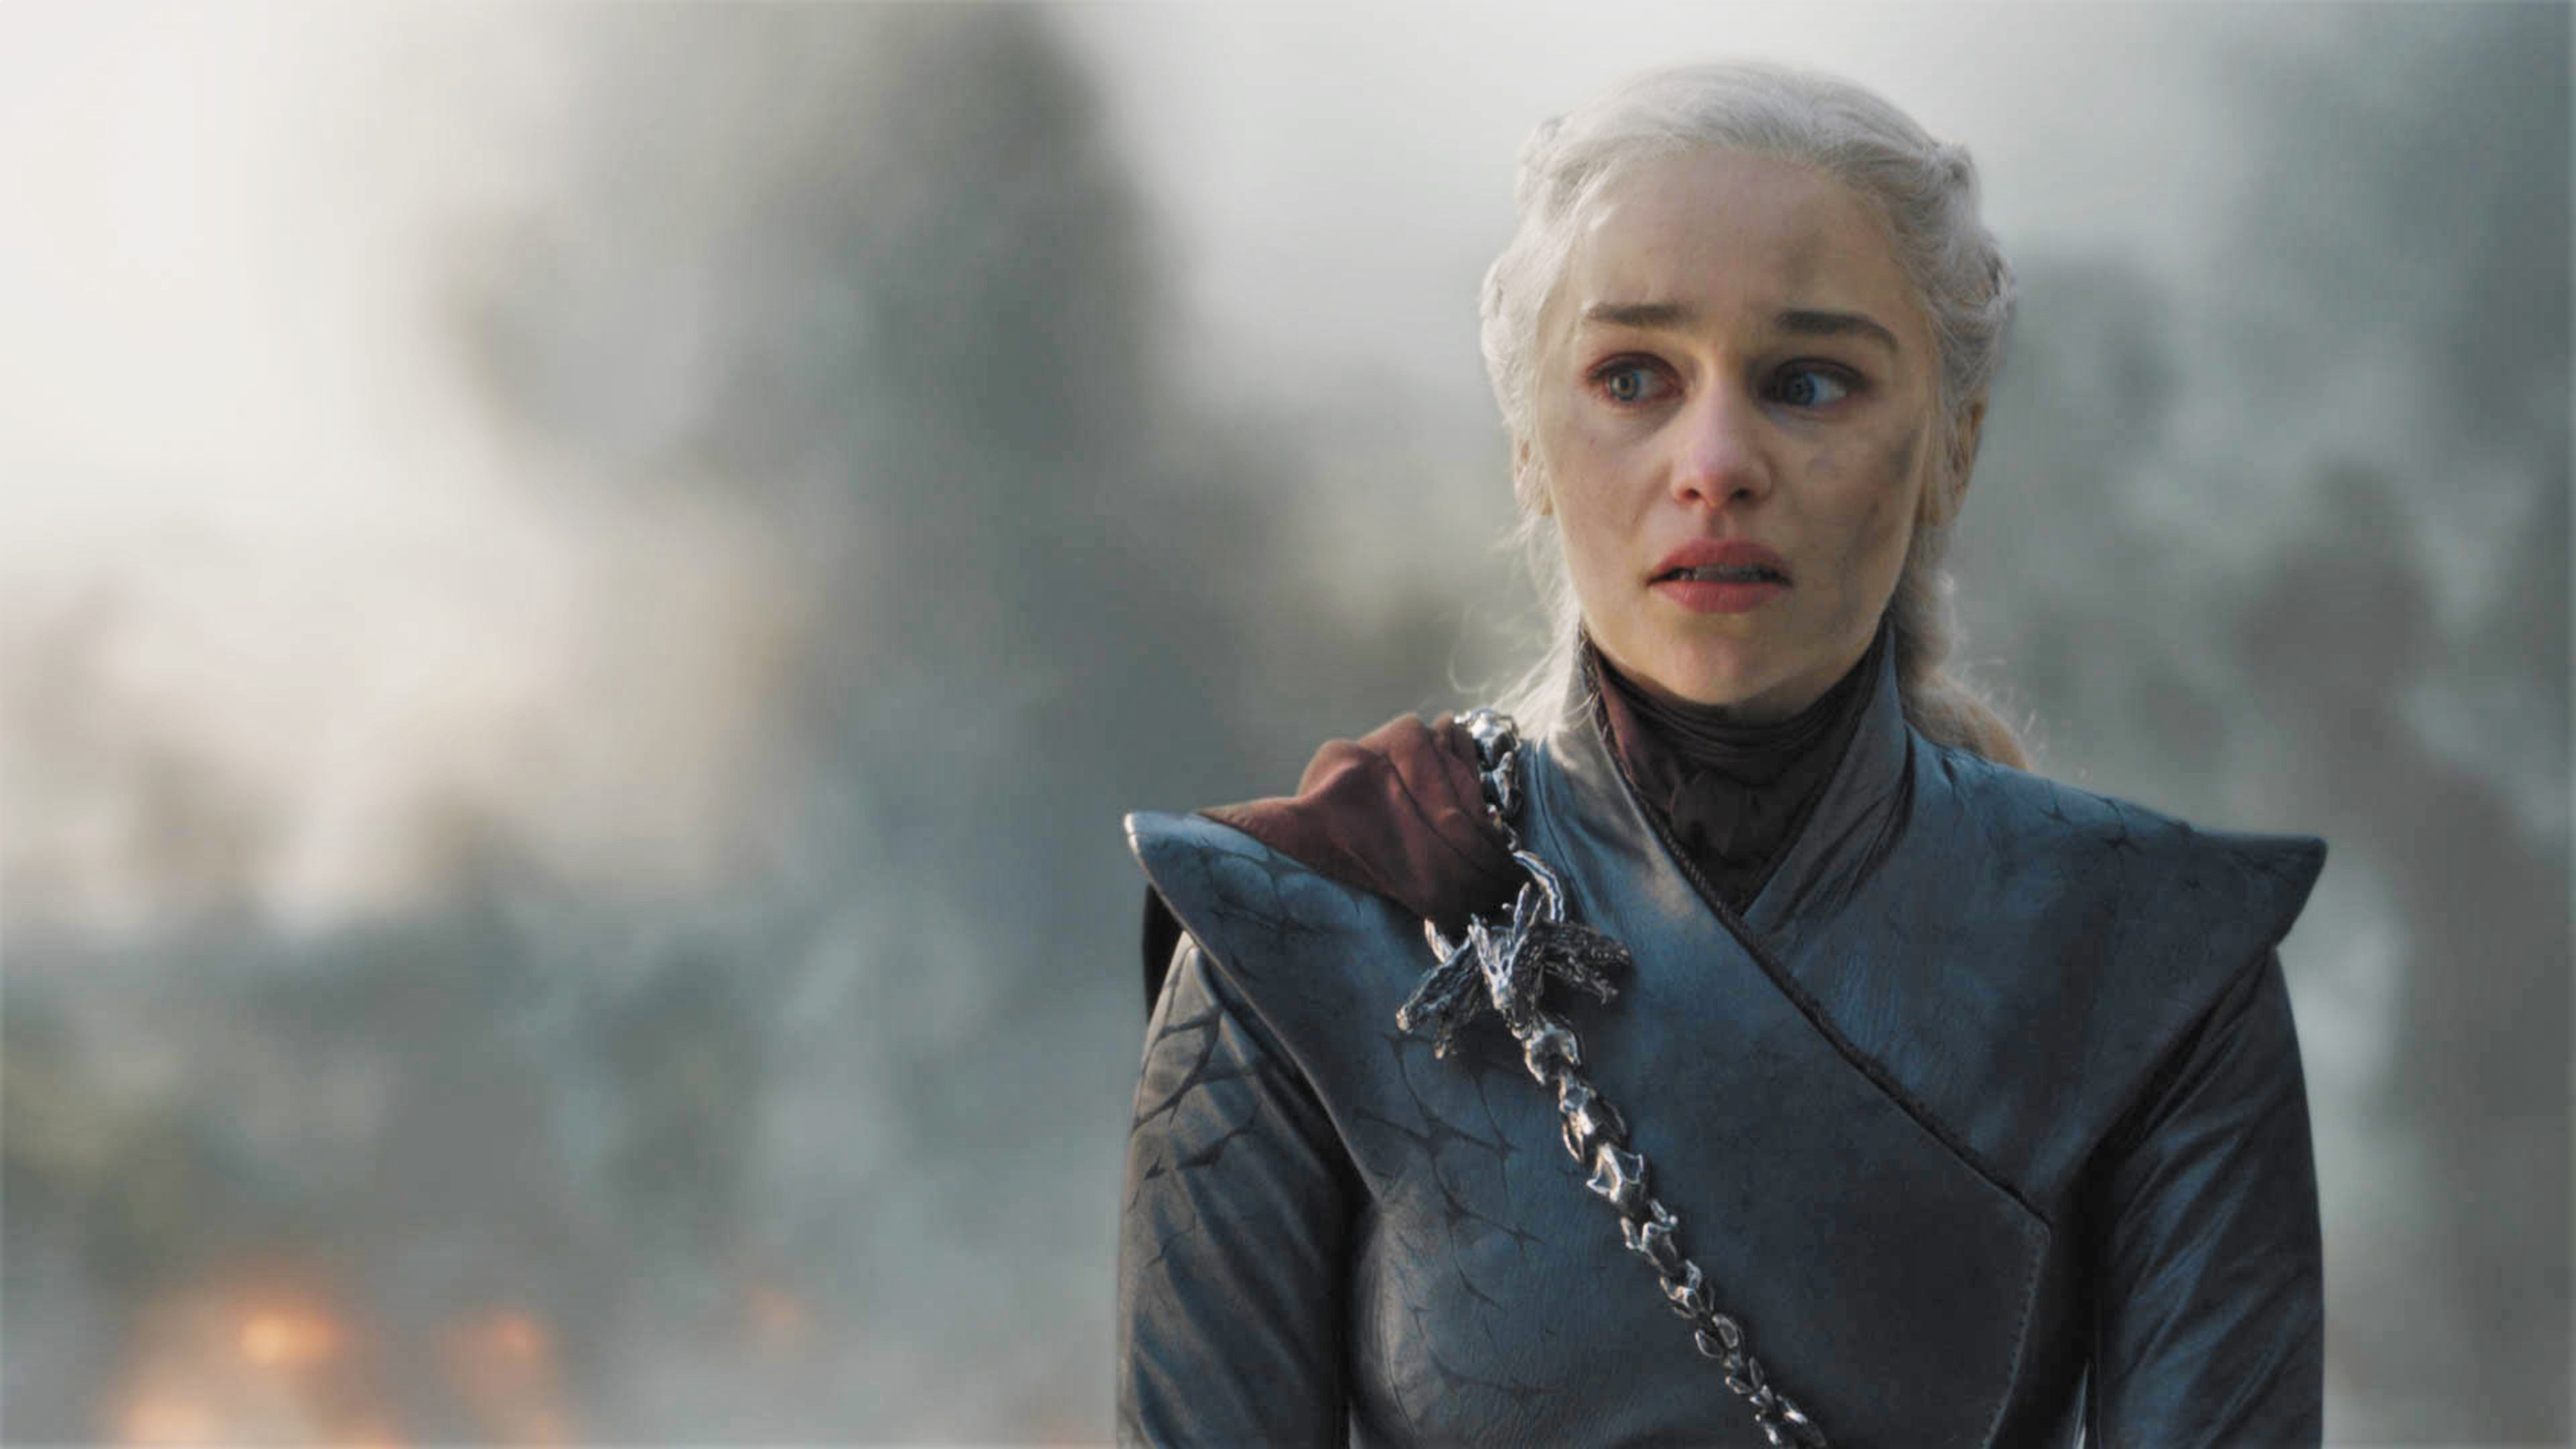 Daenerys Targaryen King's Landing Season 8 806 The Bells